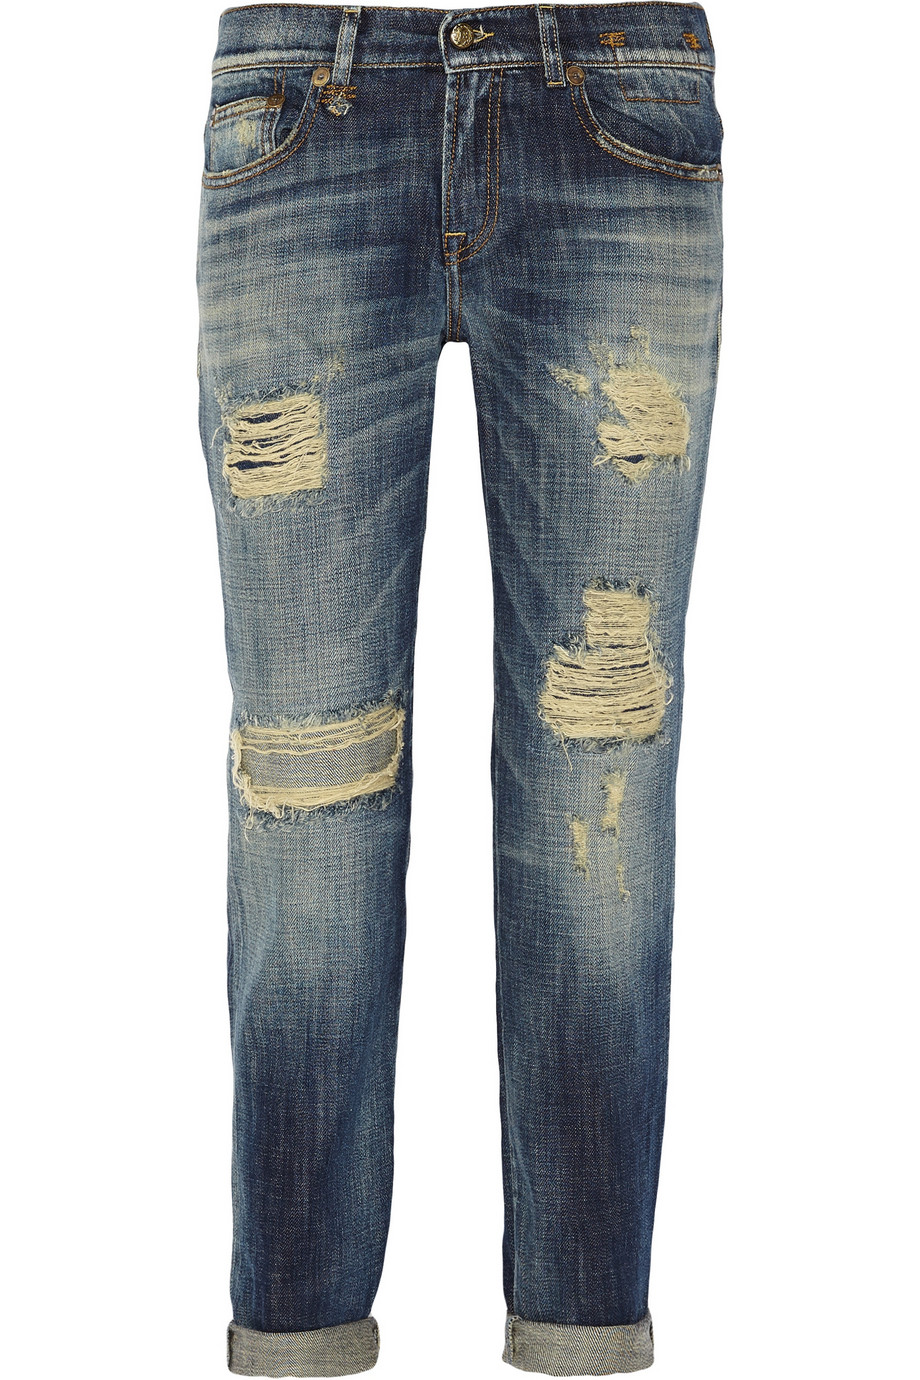 R13 DENIM - CLICK IMAGE TO SHOP